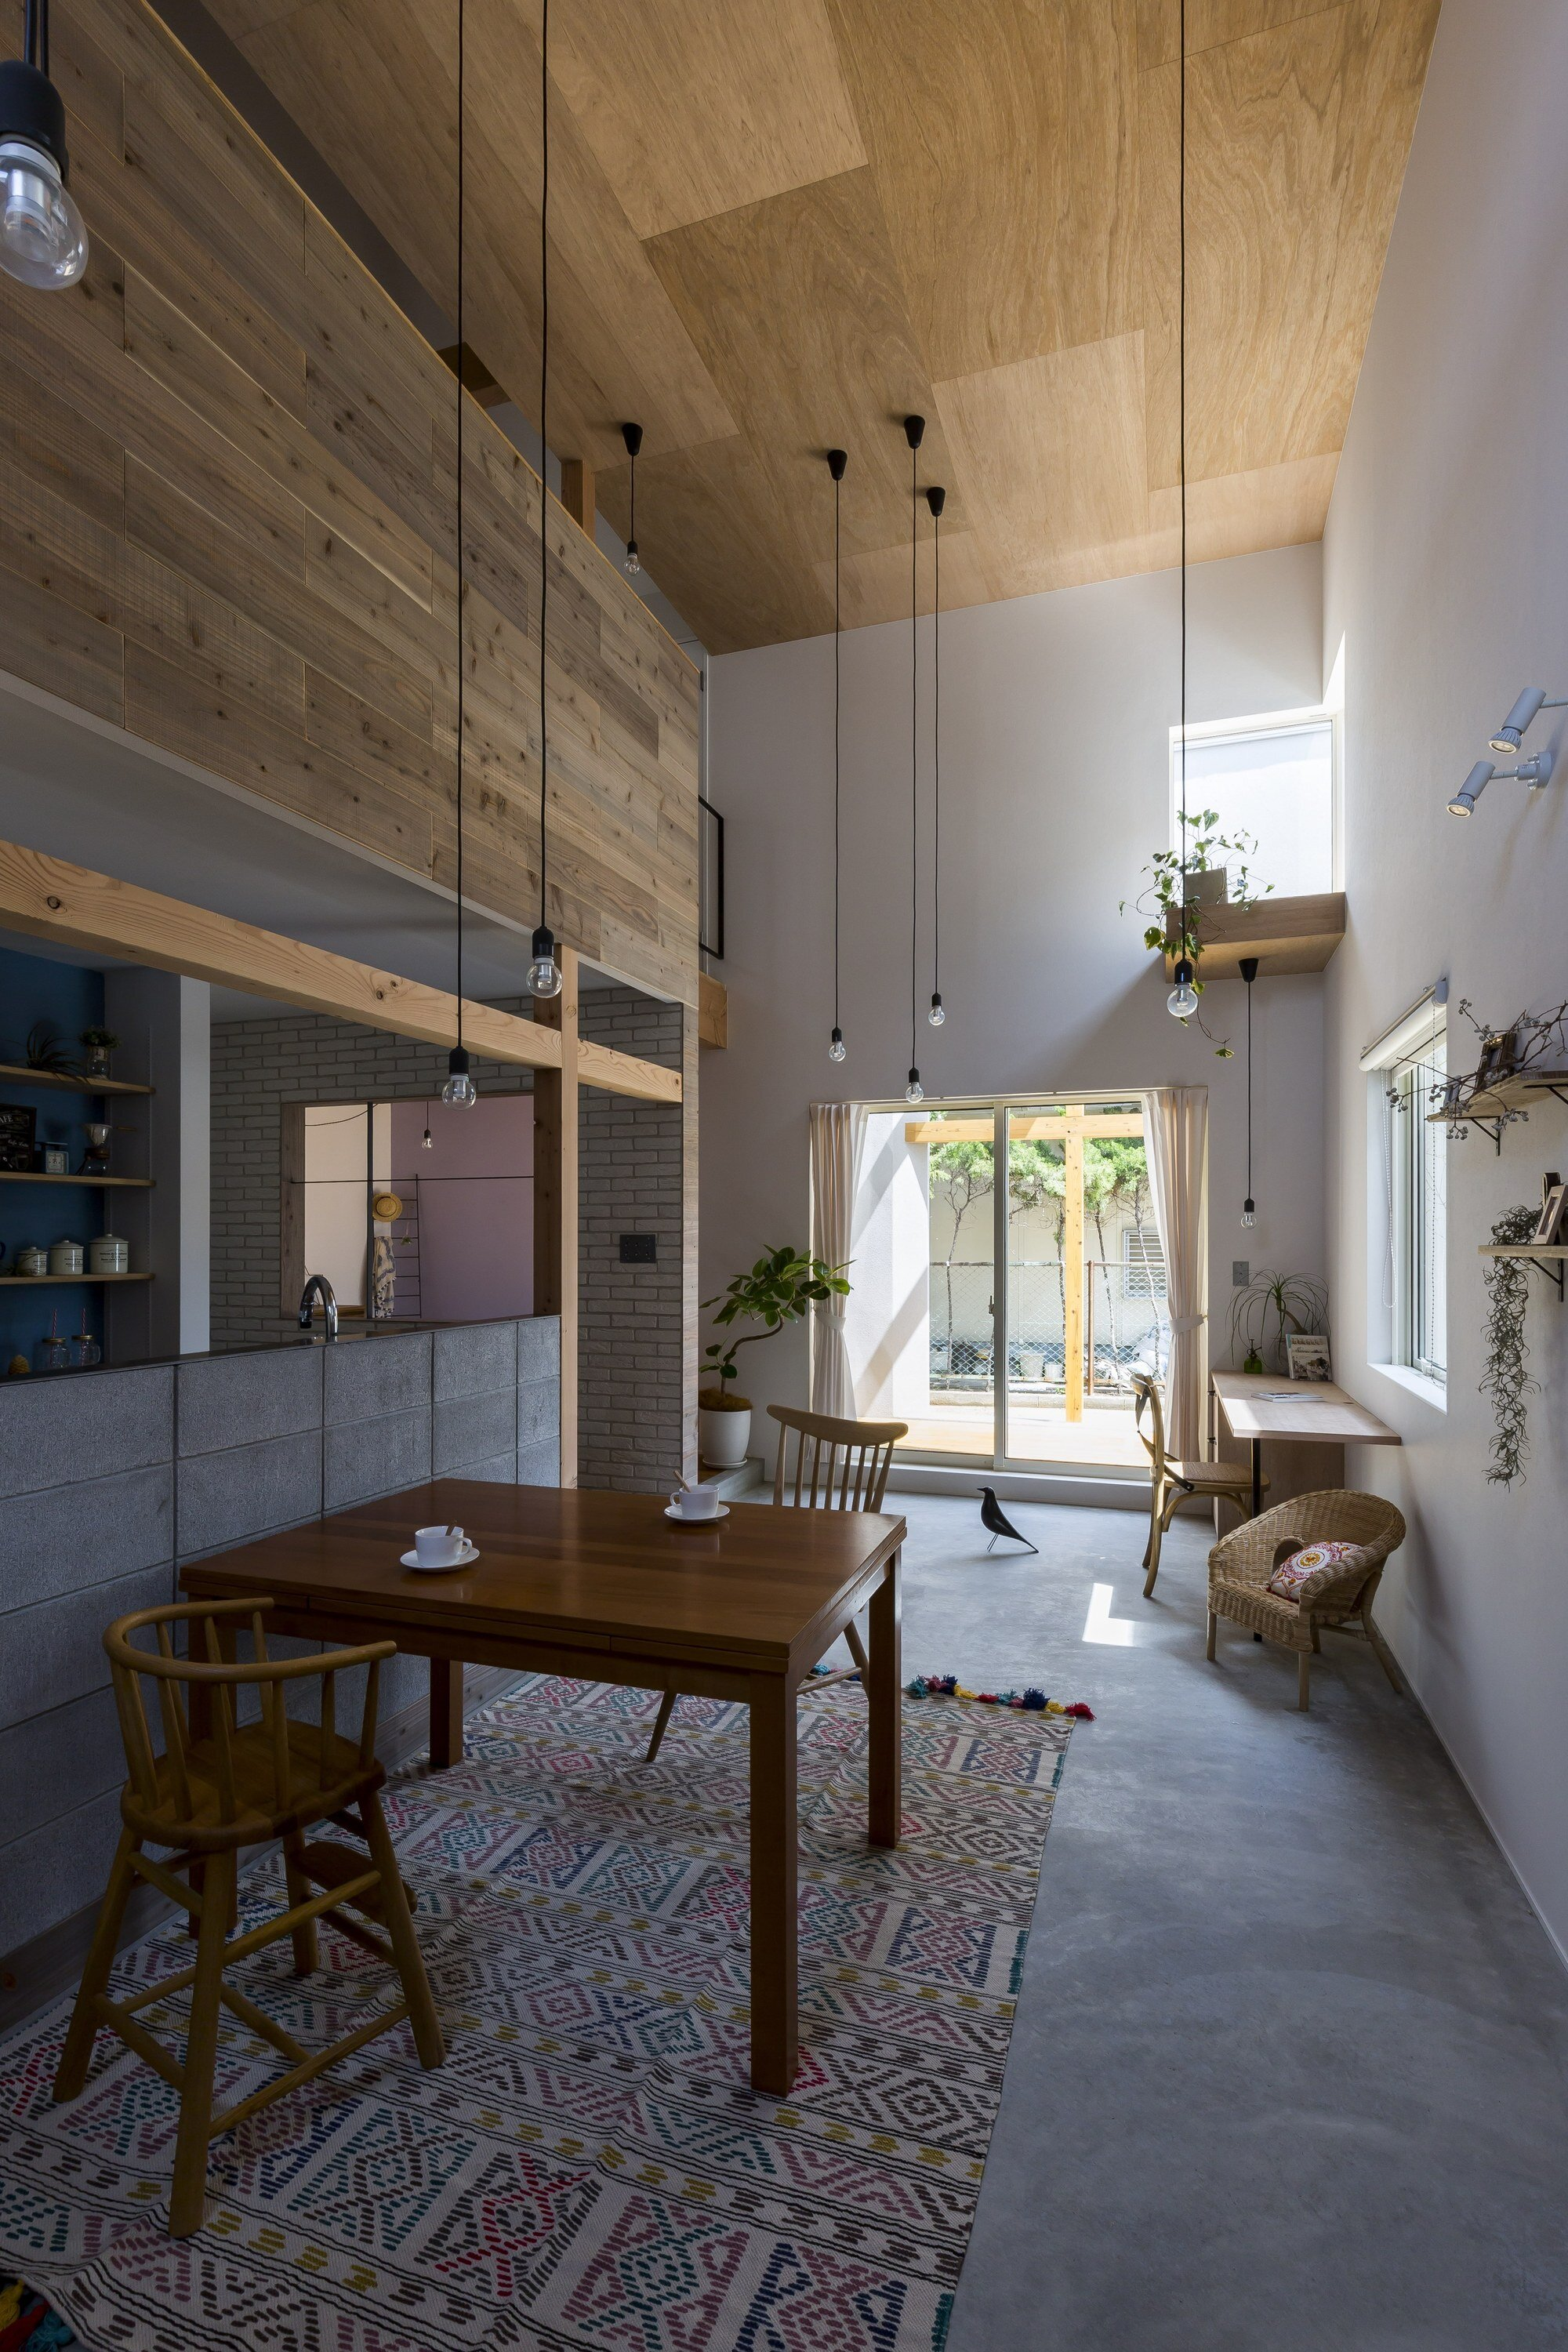 Uzi House - ALTS Design Office - Hironocho Kyoto - Dining Area - Humble Homes